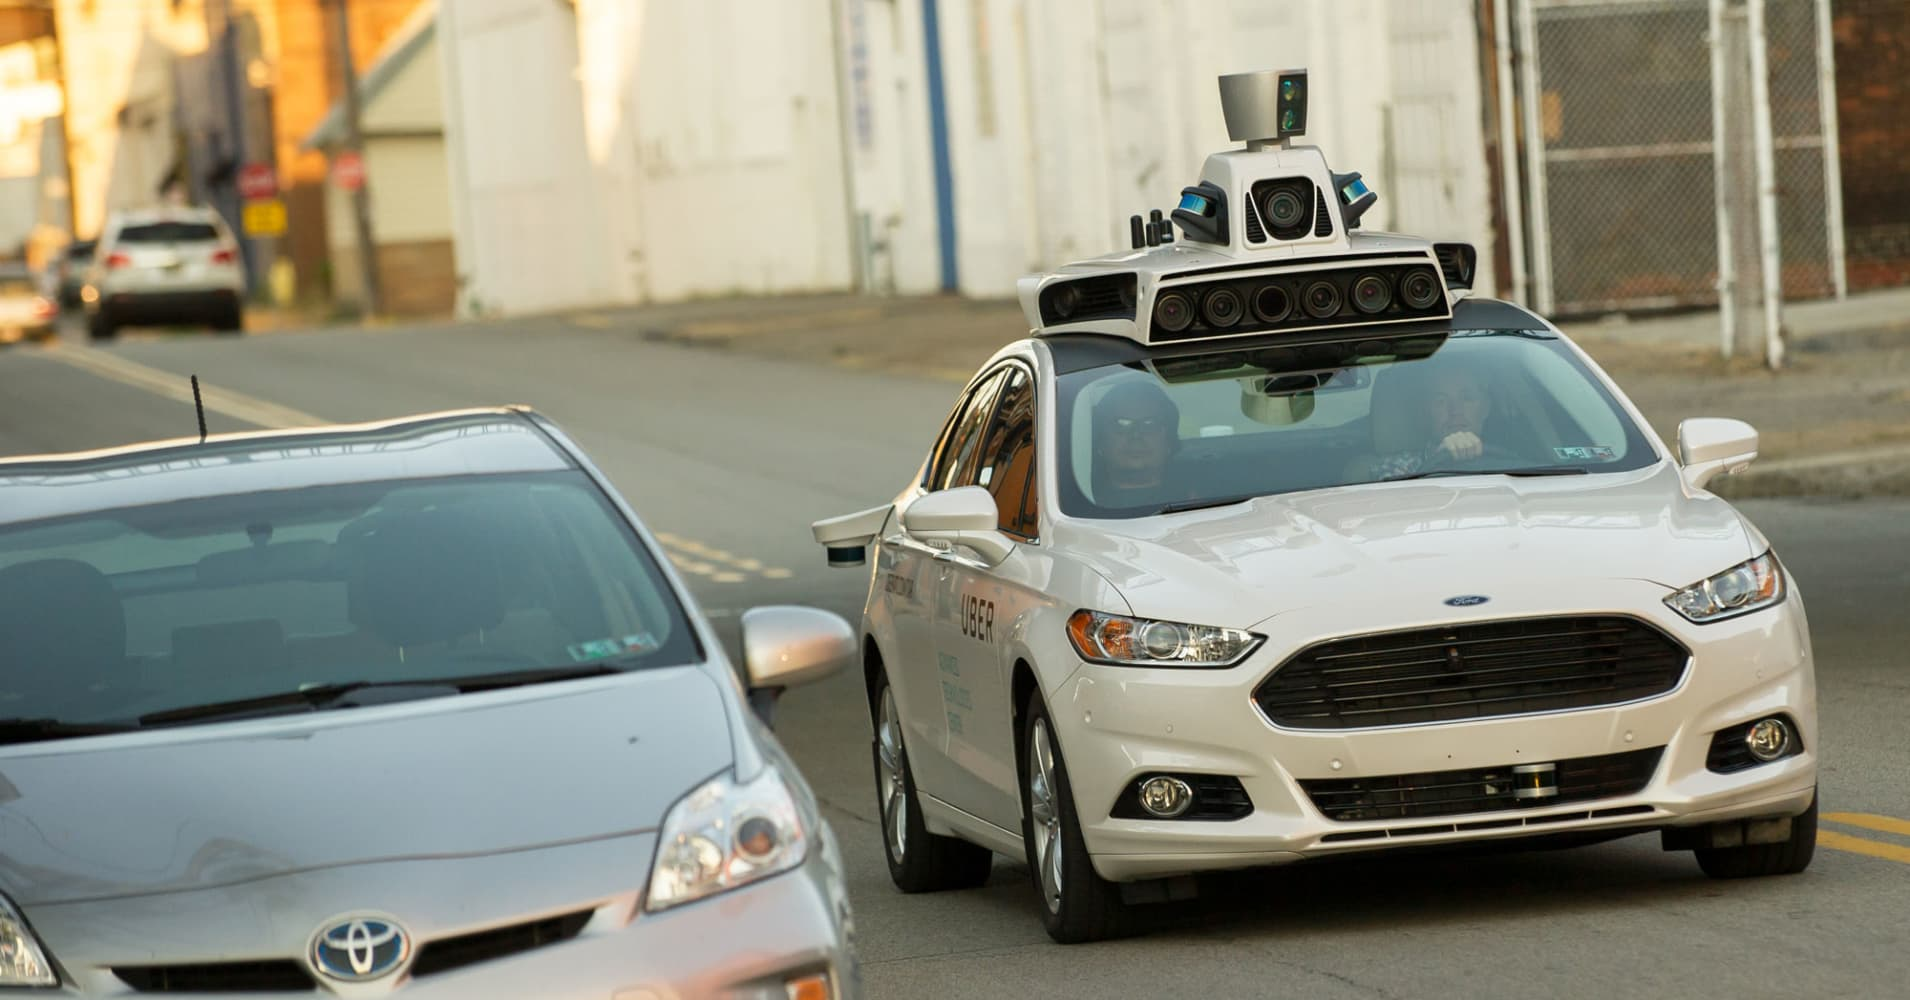 Image result for How may self-driving vehicles impact careers in the automotive industry?